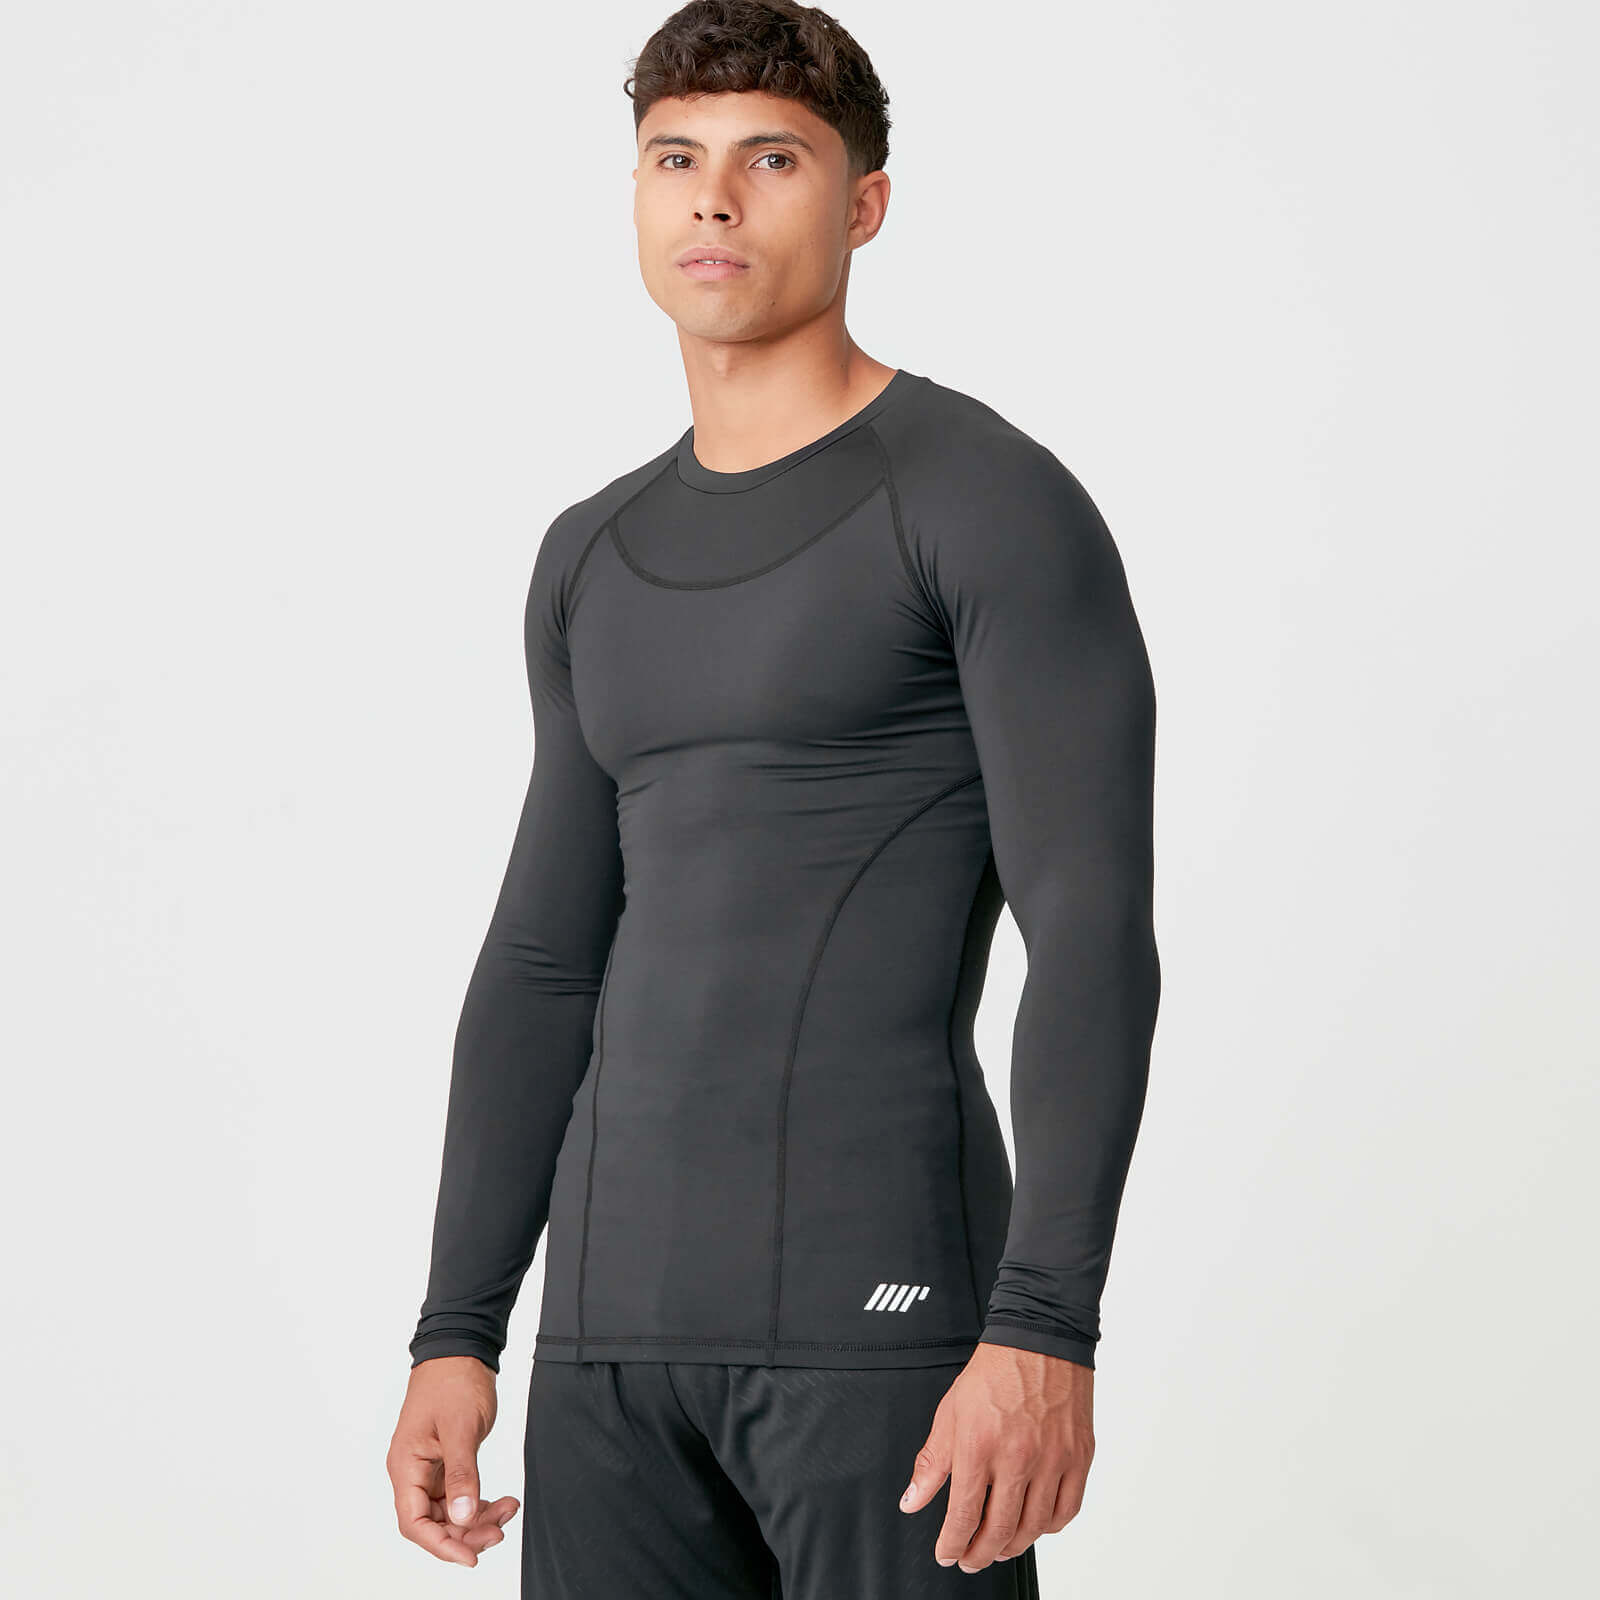 f50ab977d6 Charge Compression Long Sleeve Top - Black